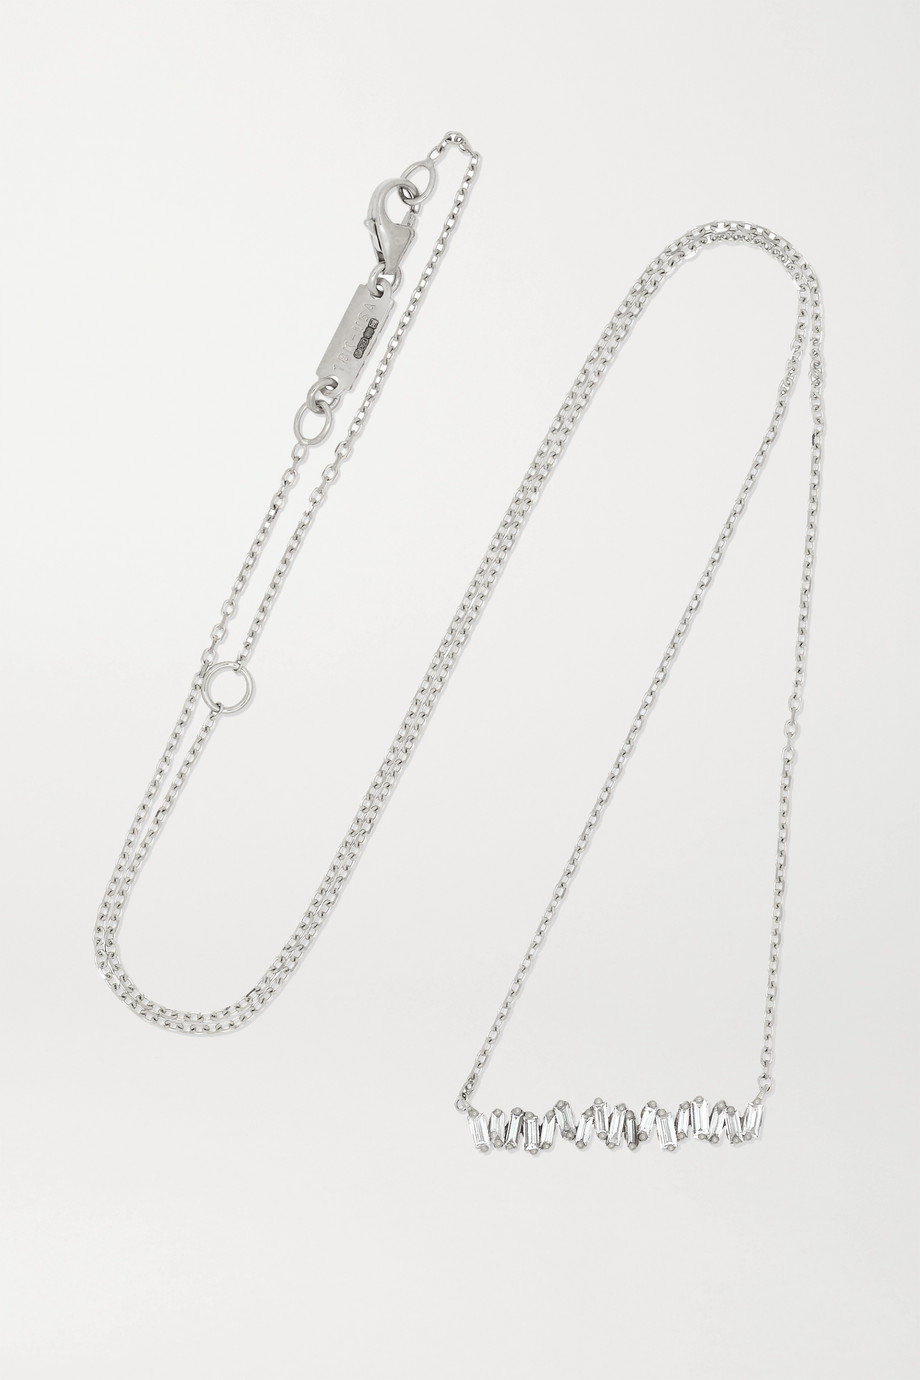 SUZANNE KALAN 18-karat white gold diamond necklace